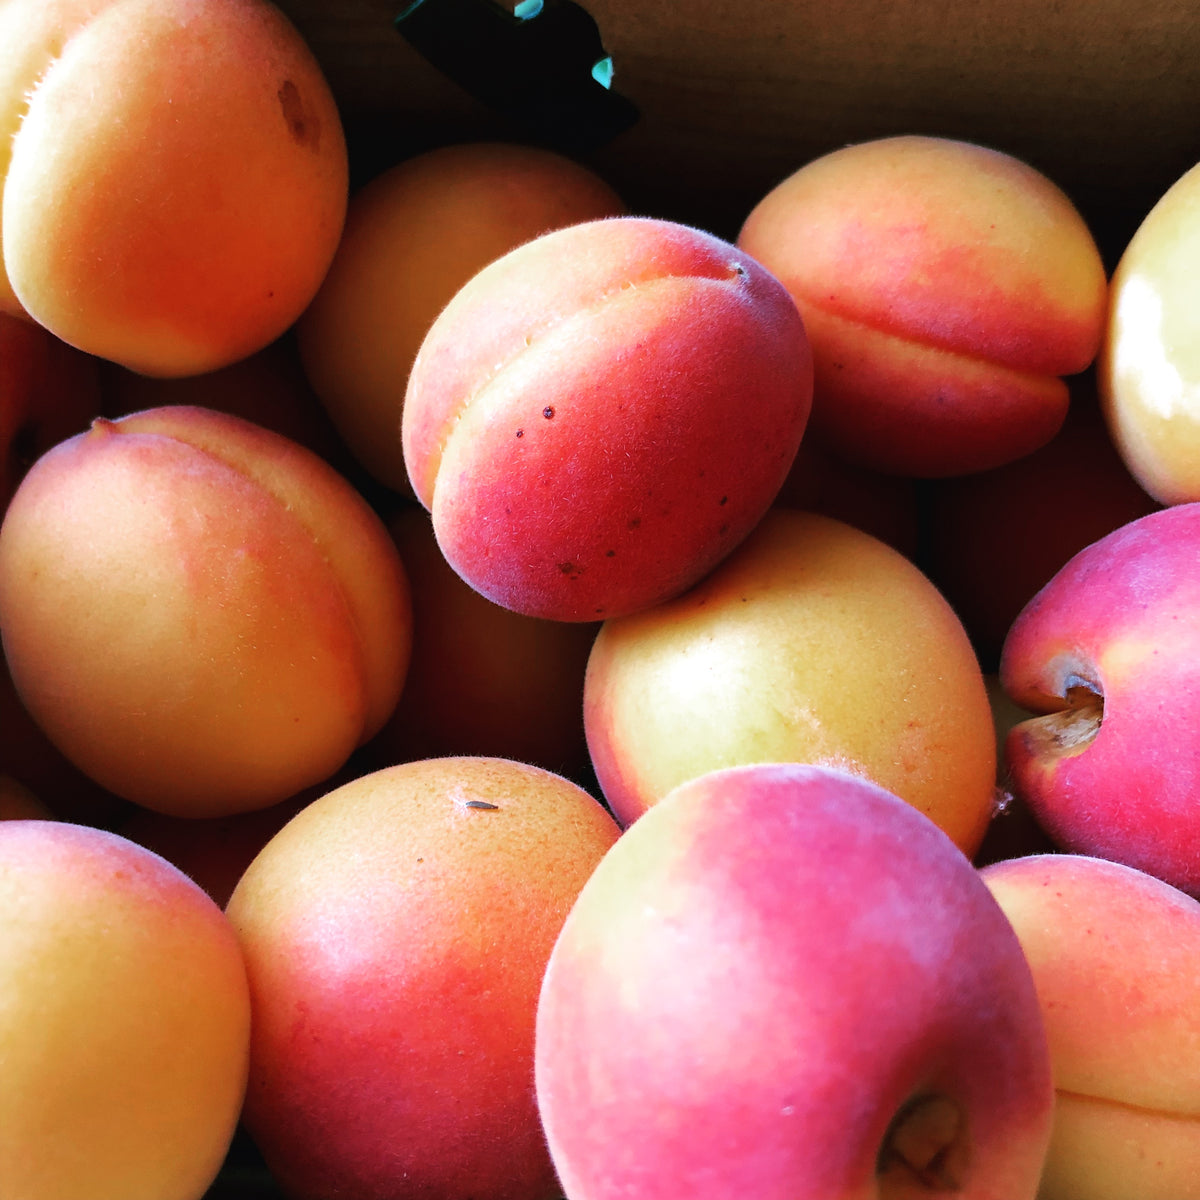 Waterloo - Full Box (20lbs) - Apricots